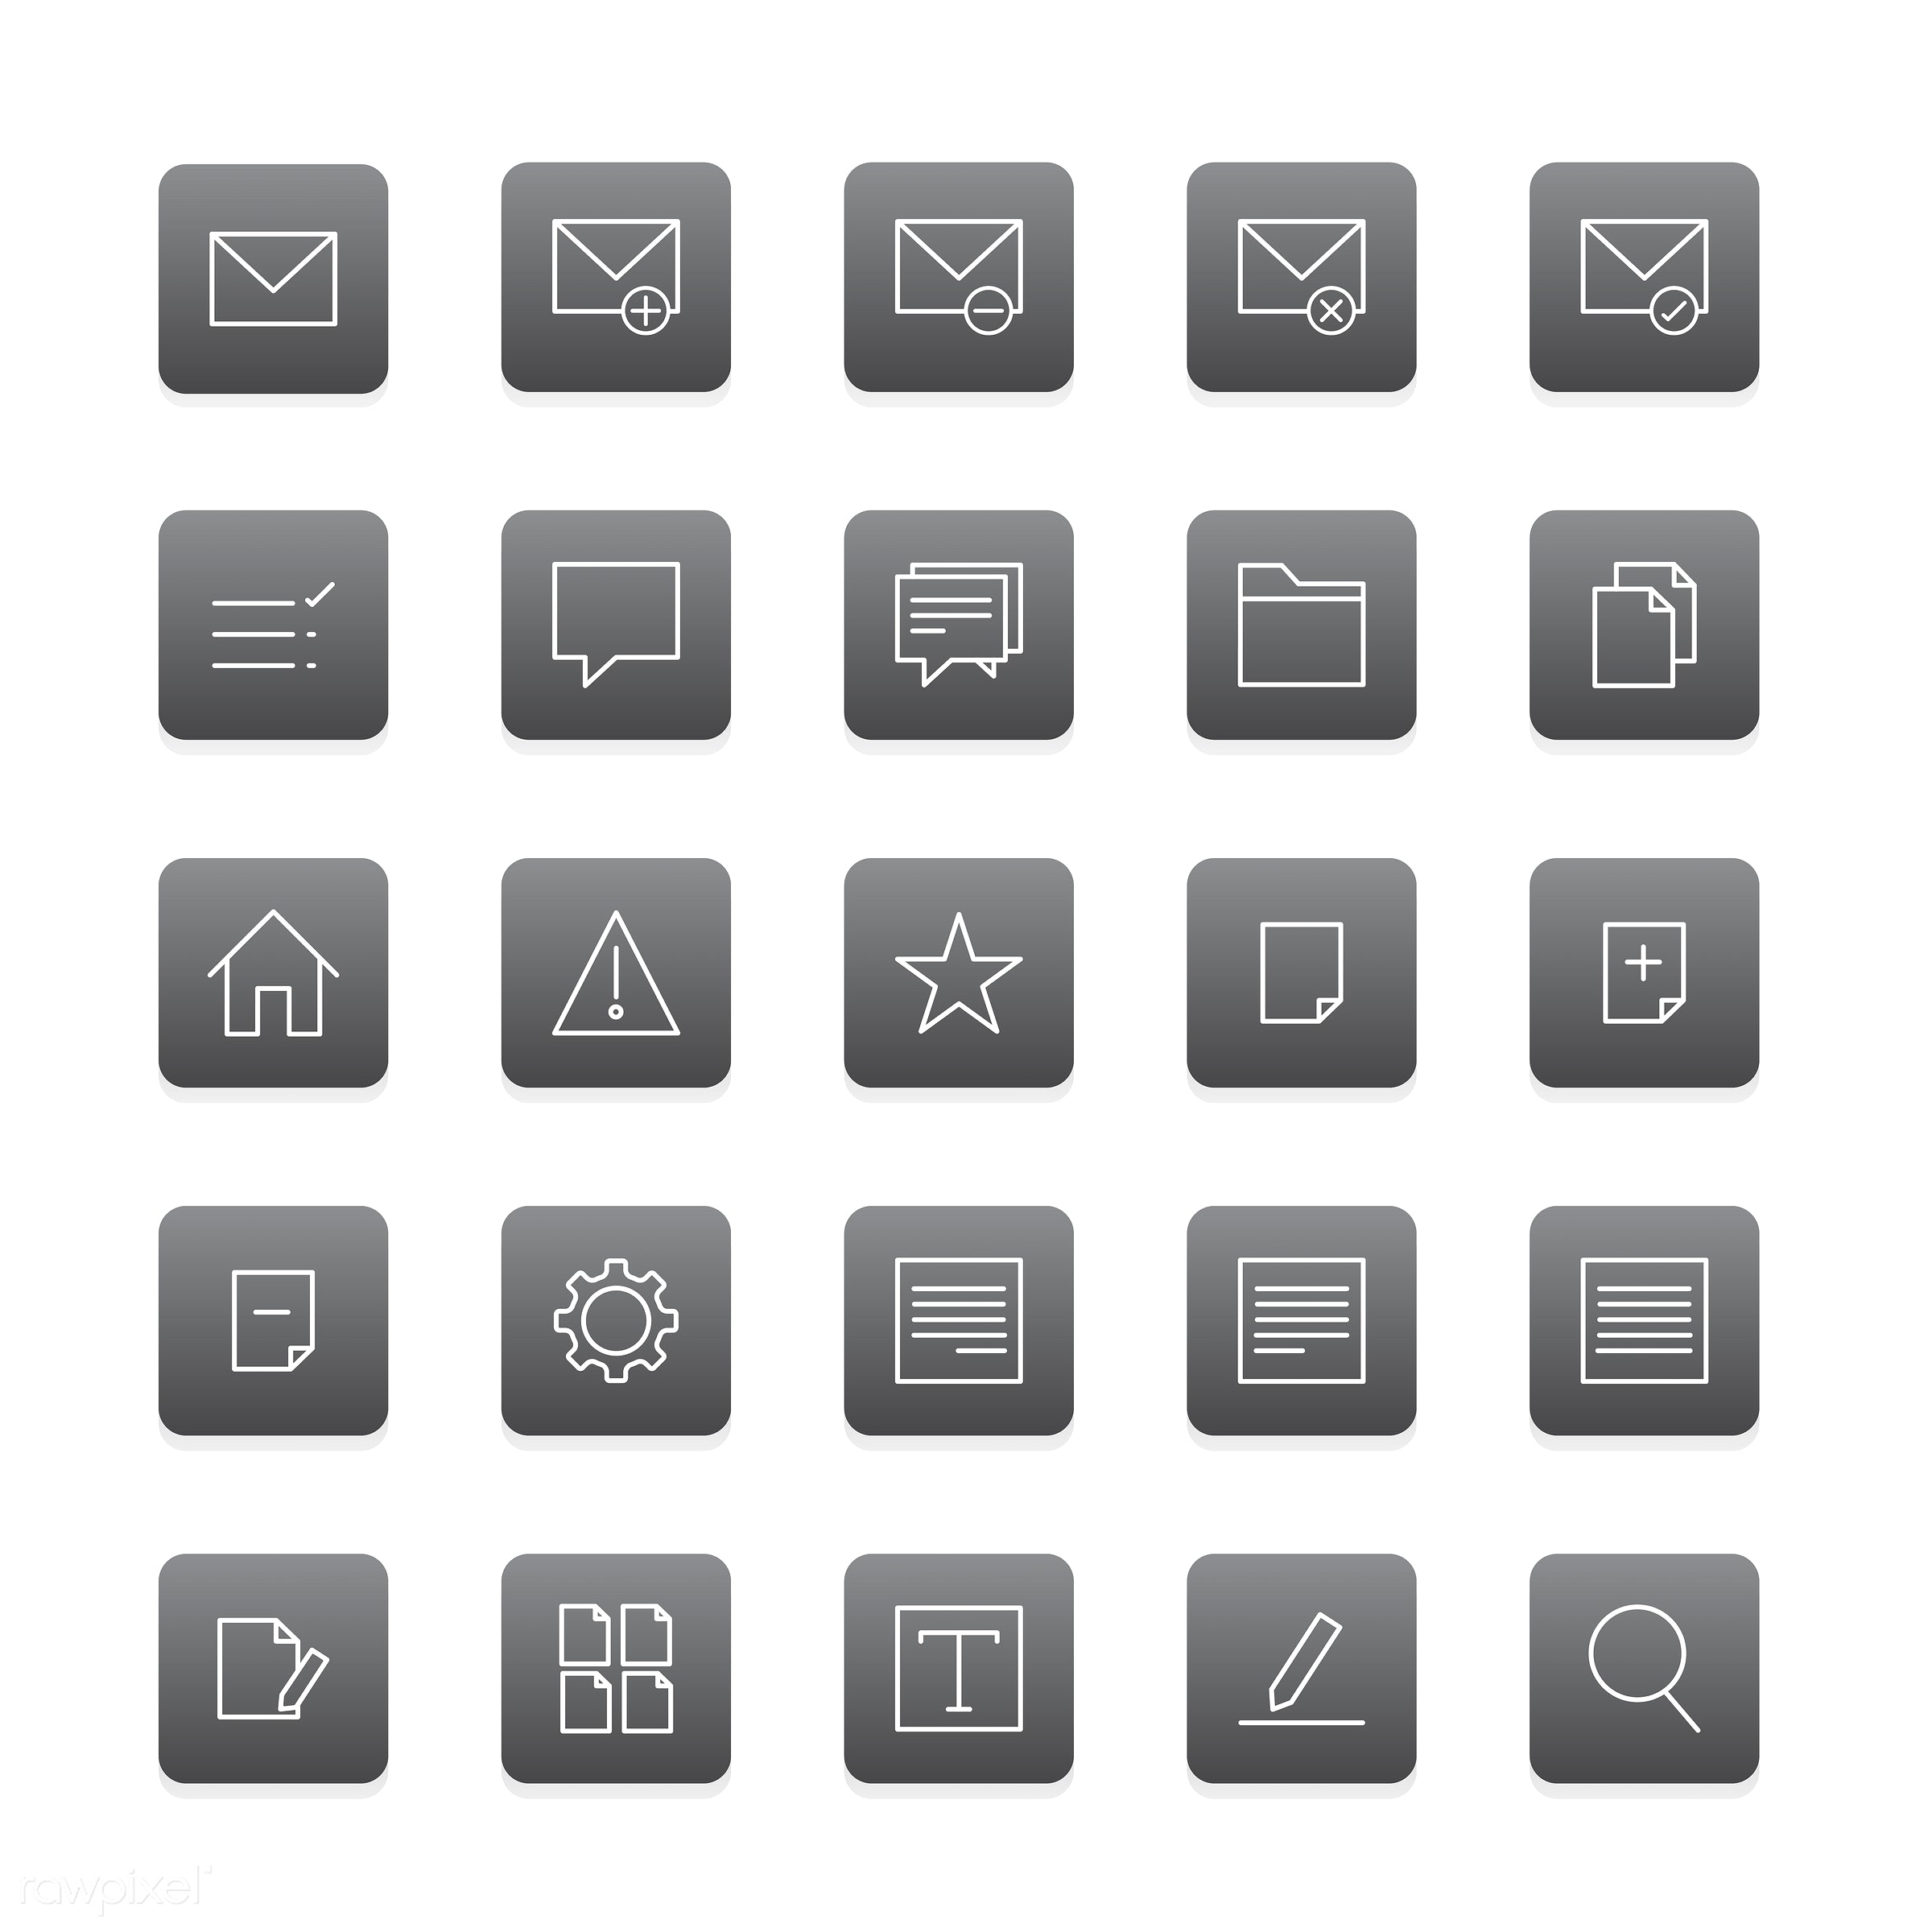 Vector set of website icons - collection, design, flat, graphic, icon, illustration, isolated, layout, platform, set, style...